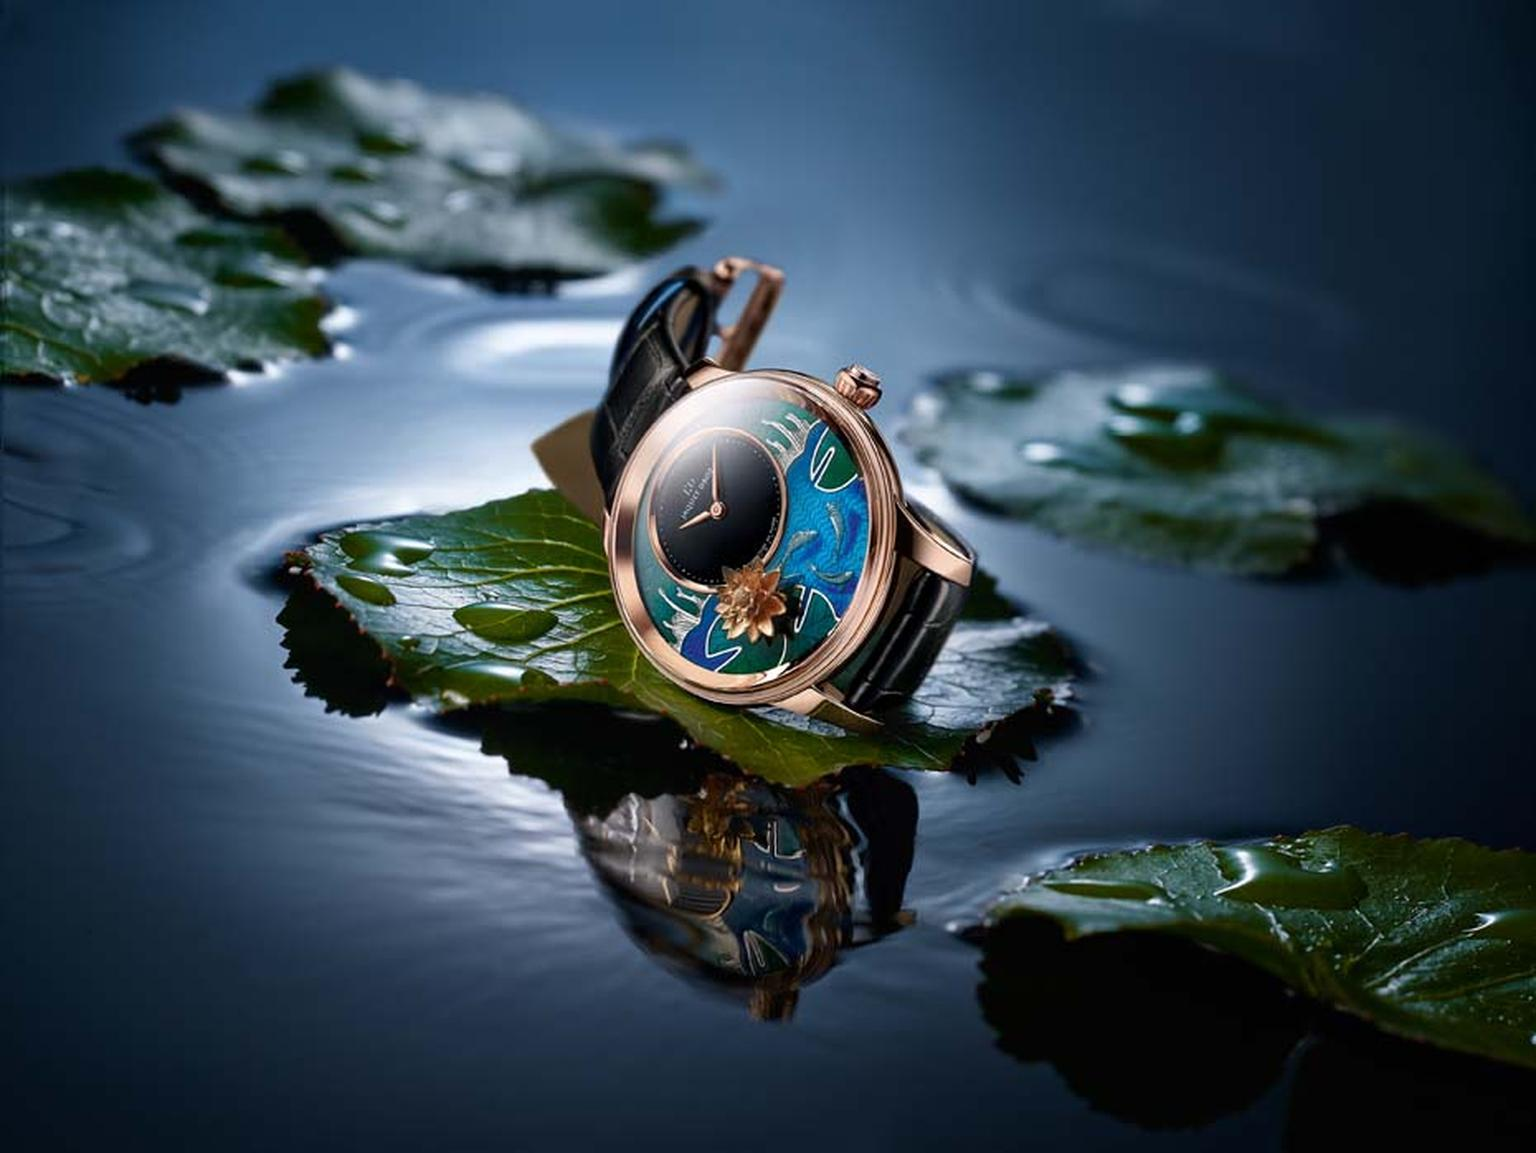 Fish watches_Jaquet Droz_Petite heure minute carps ambiance.jpg